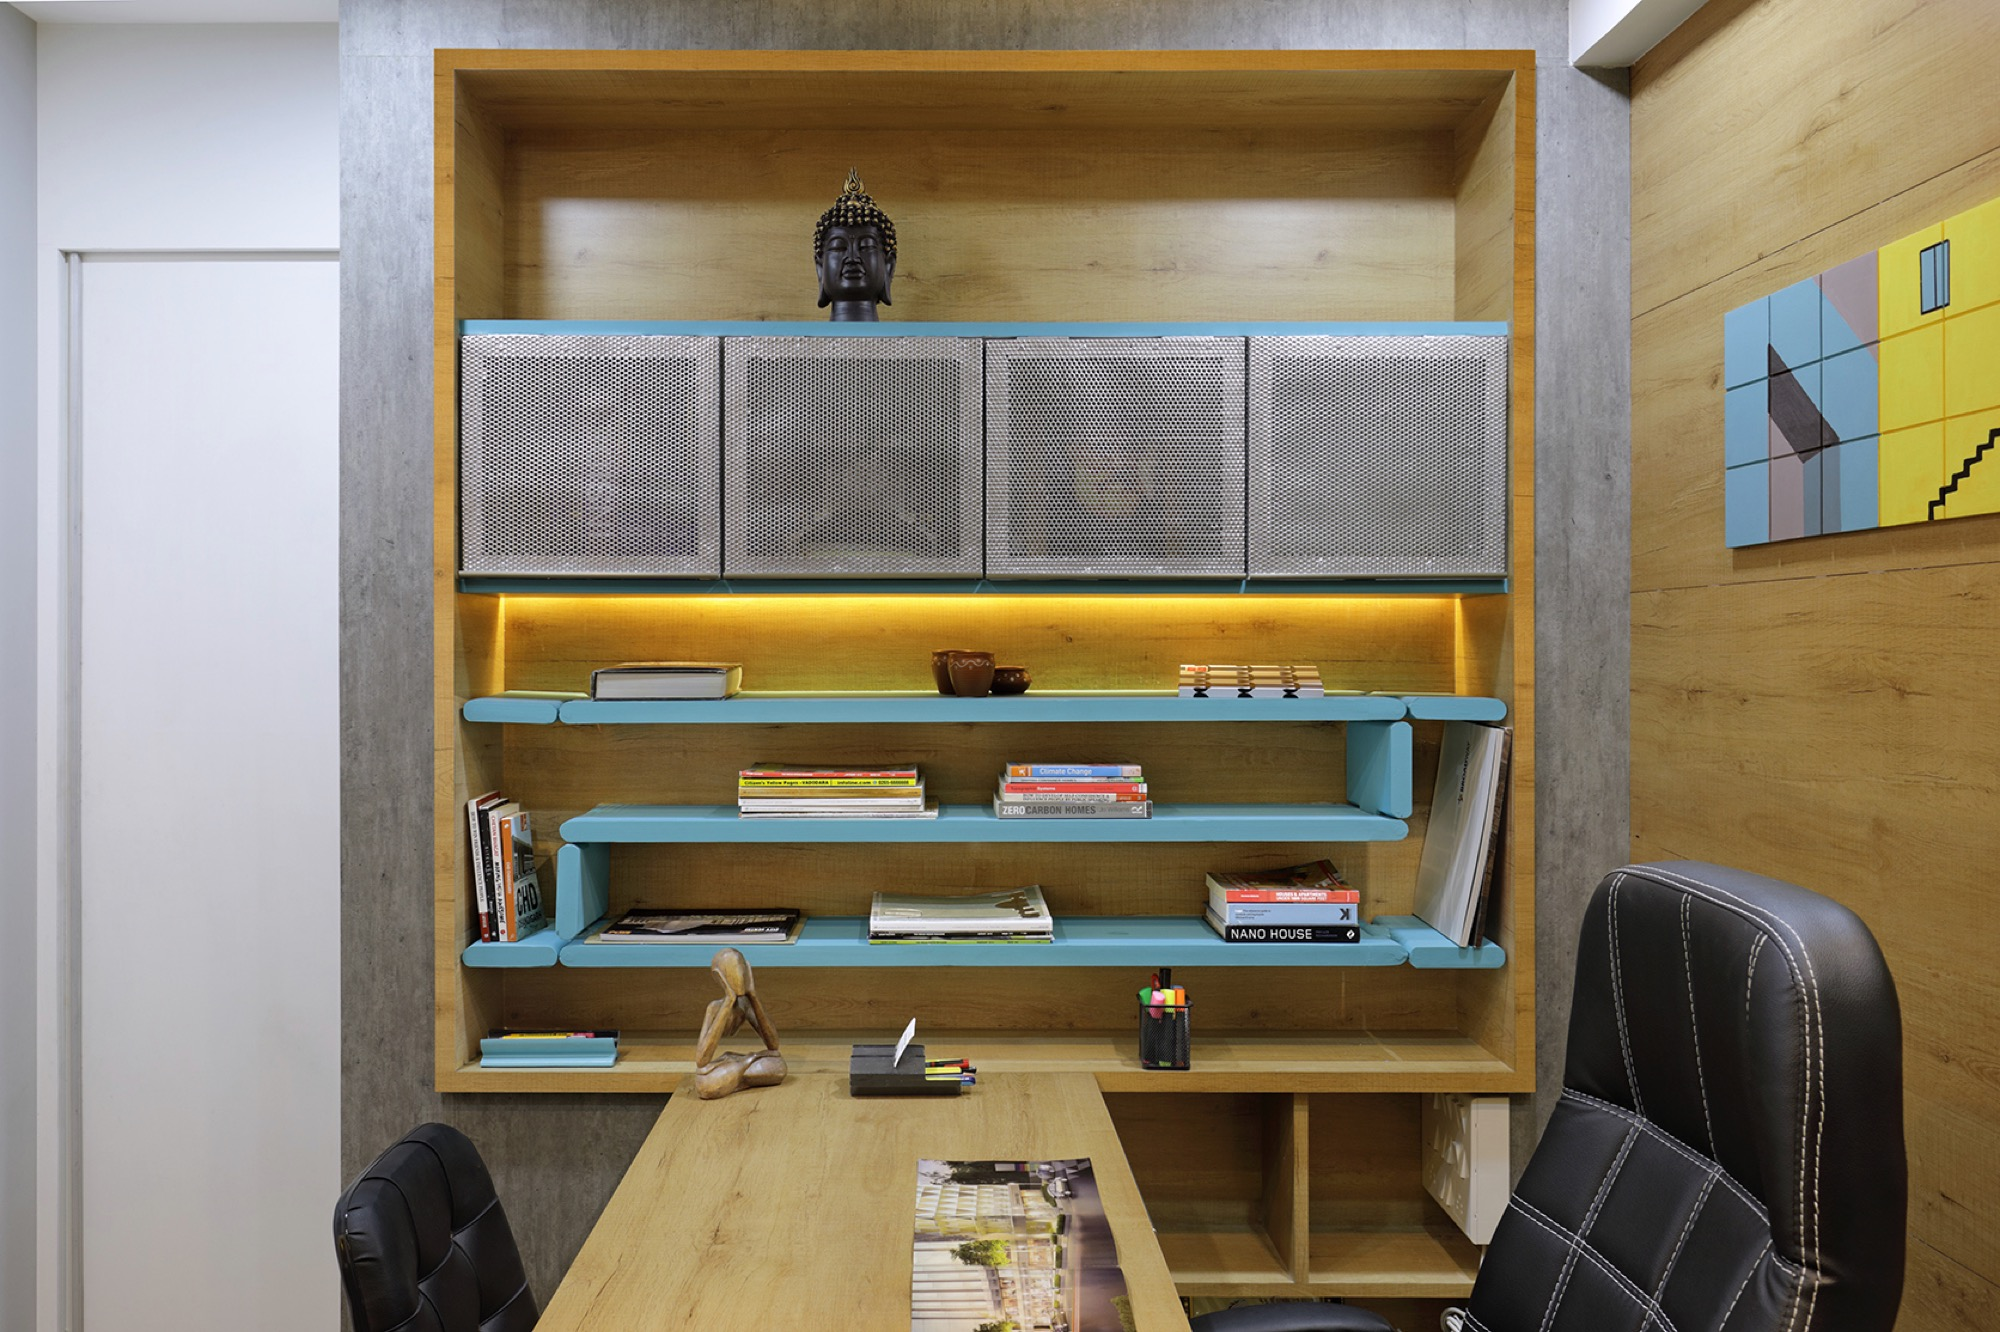 Adaptable furniture that defines the office space, designed by Manoj patel Design Studio 13